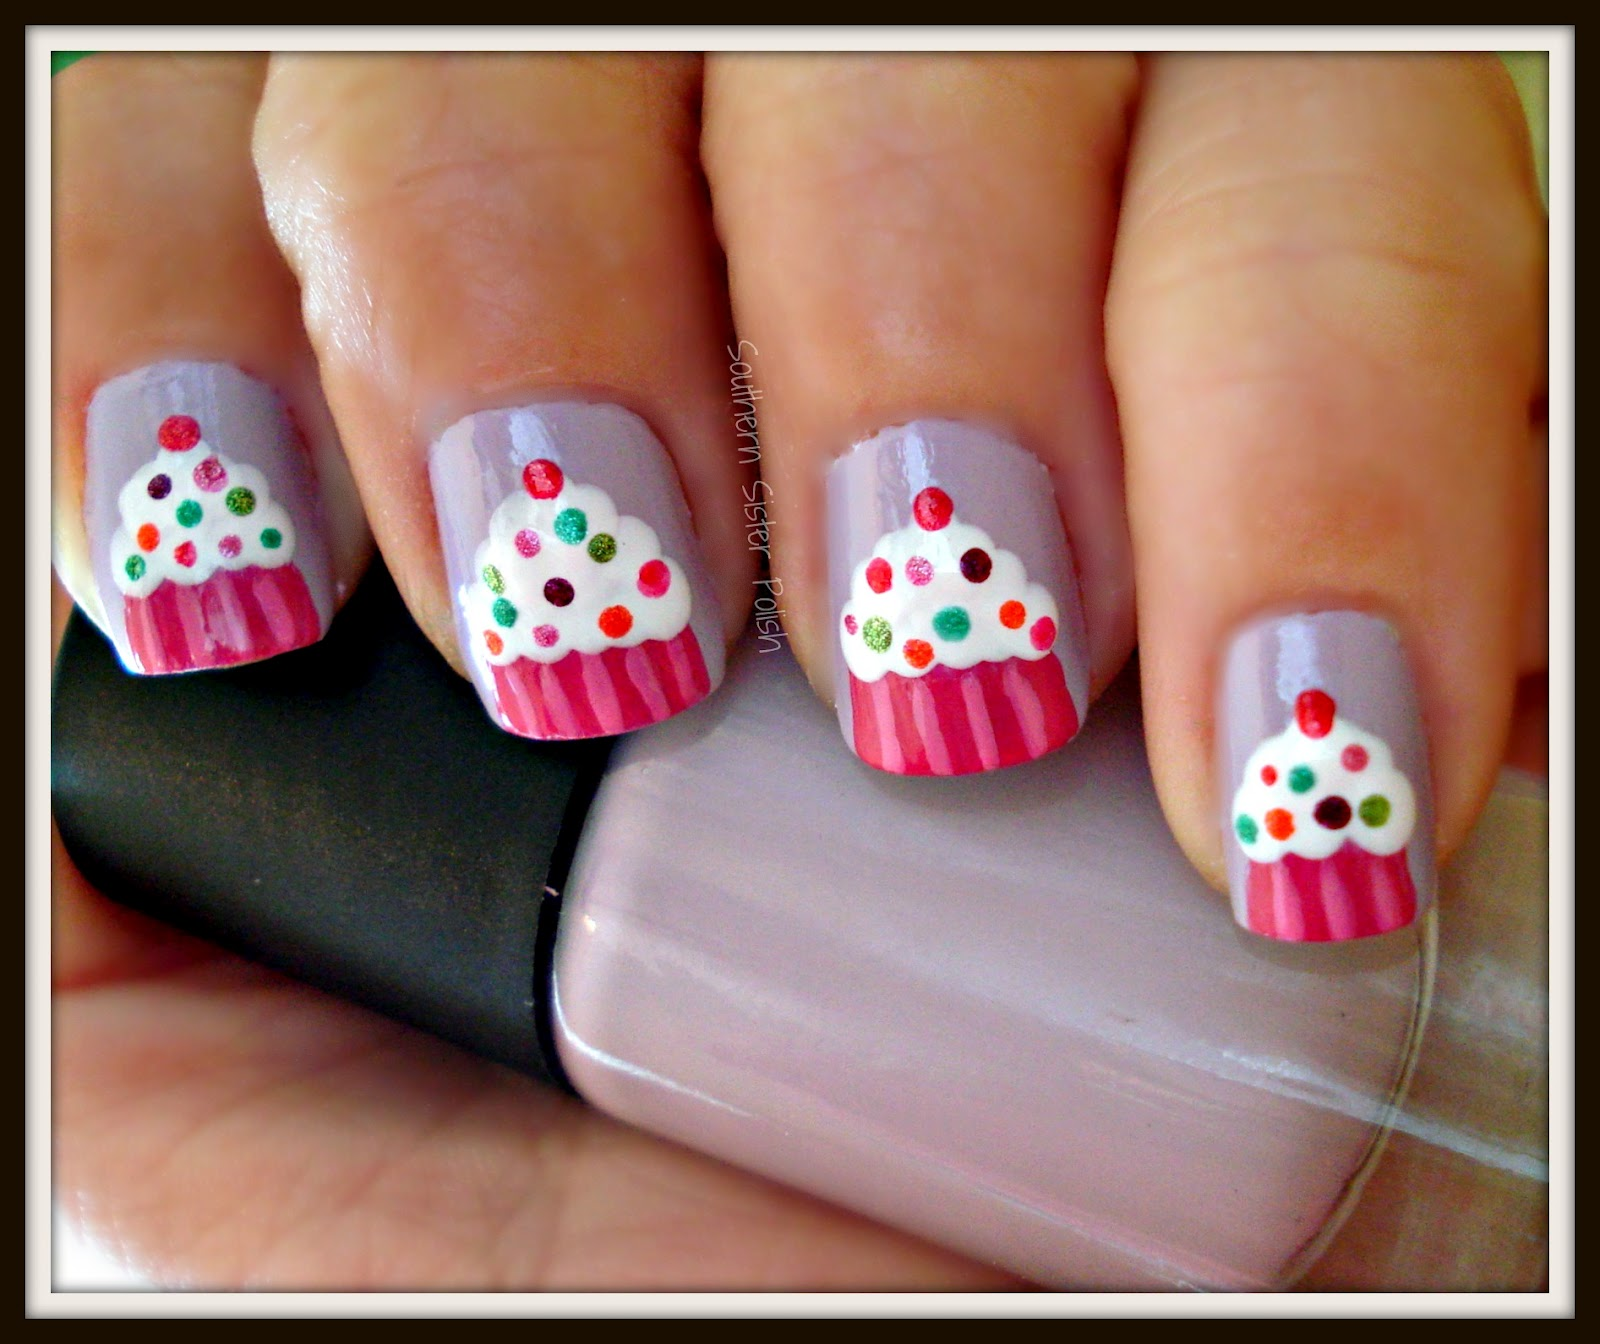 Southern sister polish nail art wednesday birthday cupcakes and since im another year older i wanted to share a little bit more about myself im 33 yrs old married with two kids im a georgia girl loving living prinsesfo Choice Image